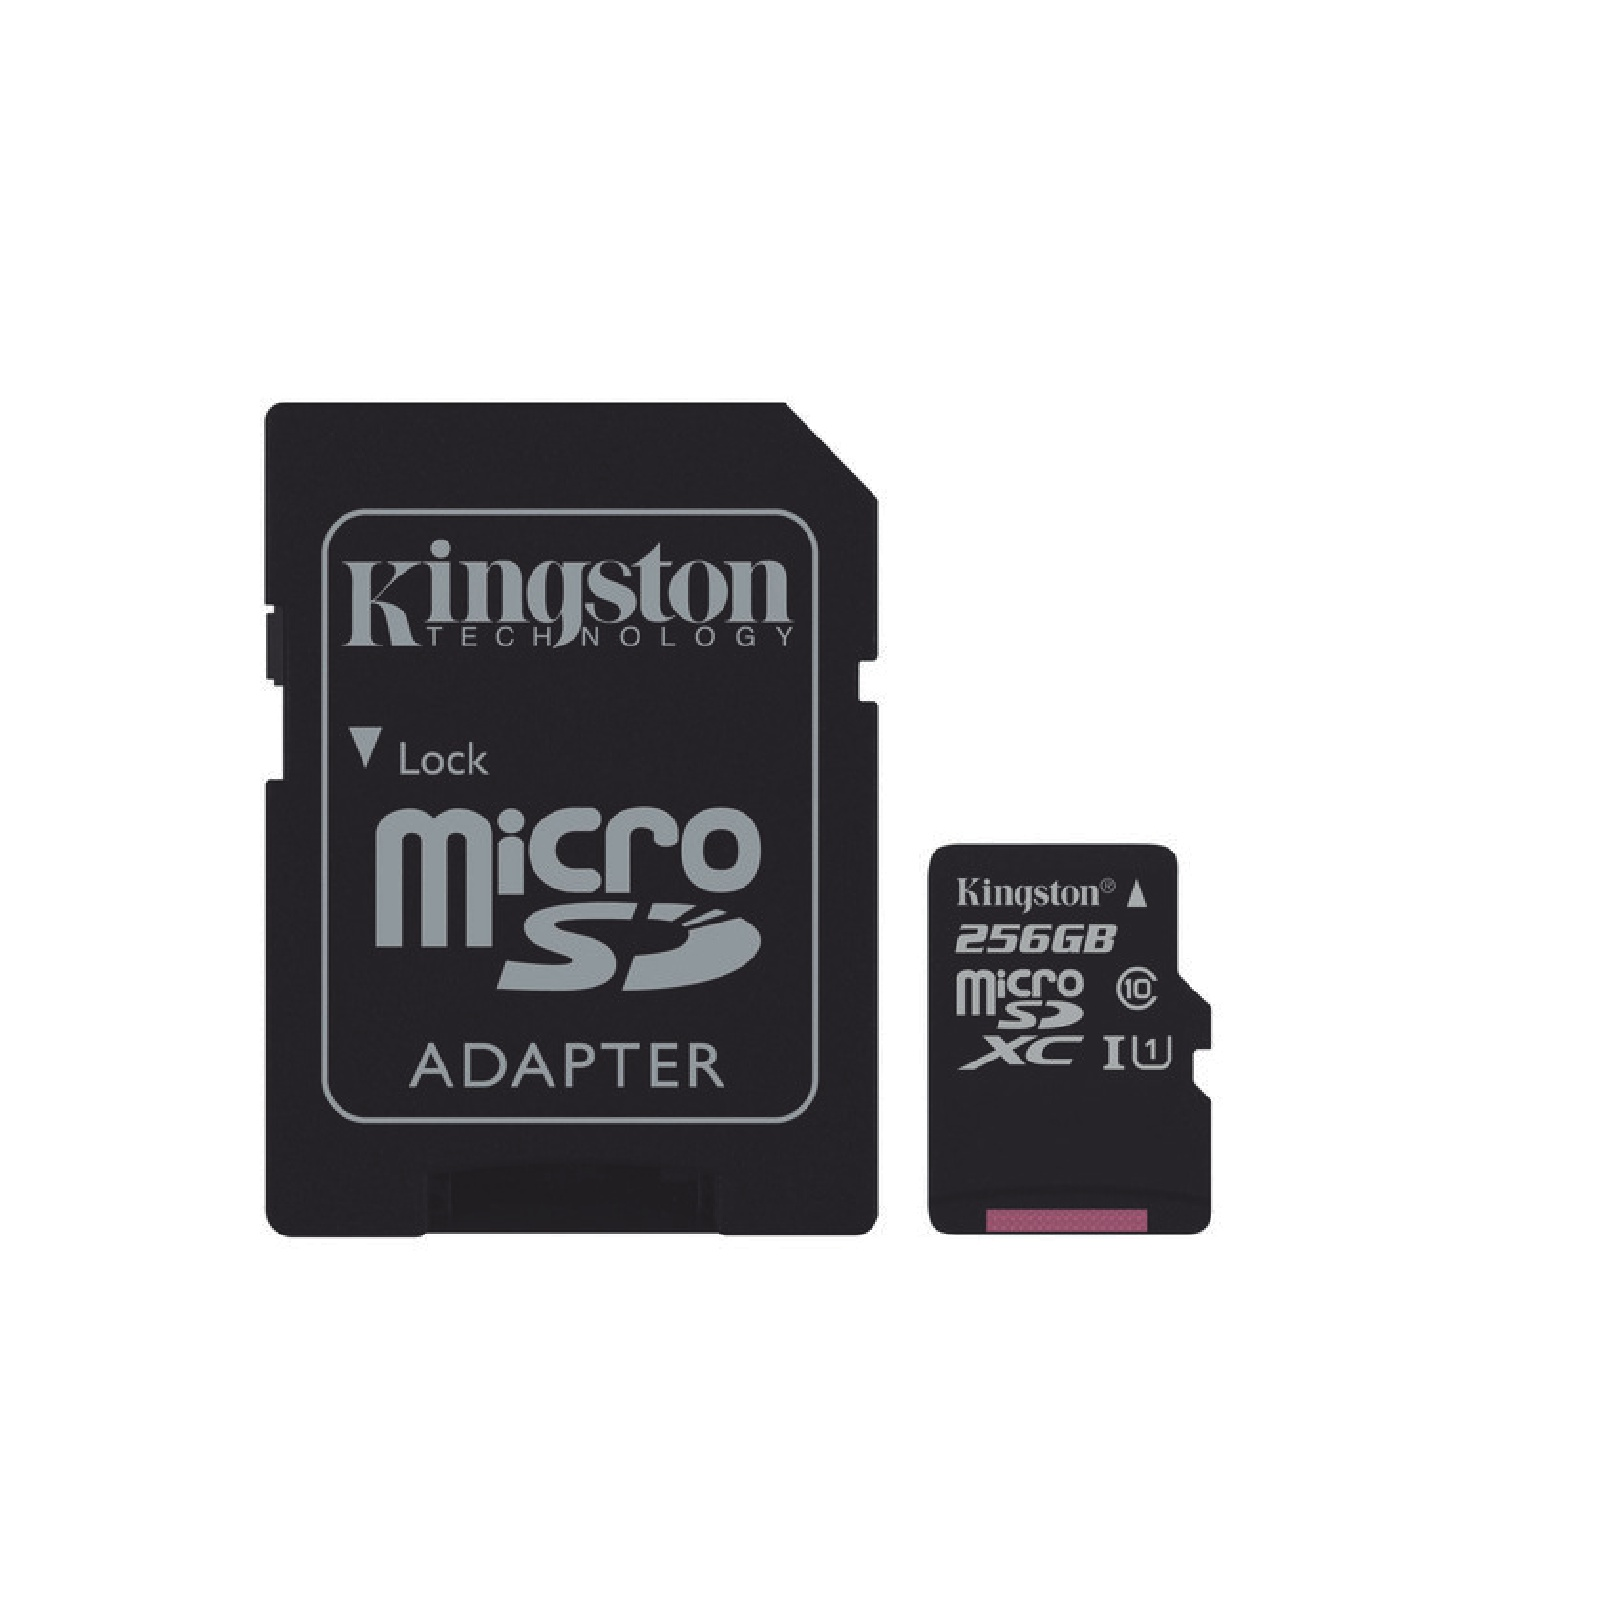 Micro SD Kingston 256GB Clase 10 Uhs-I 80mb/S